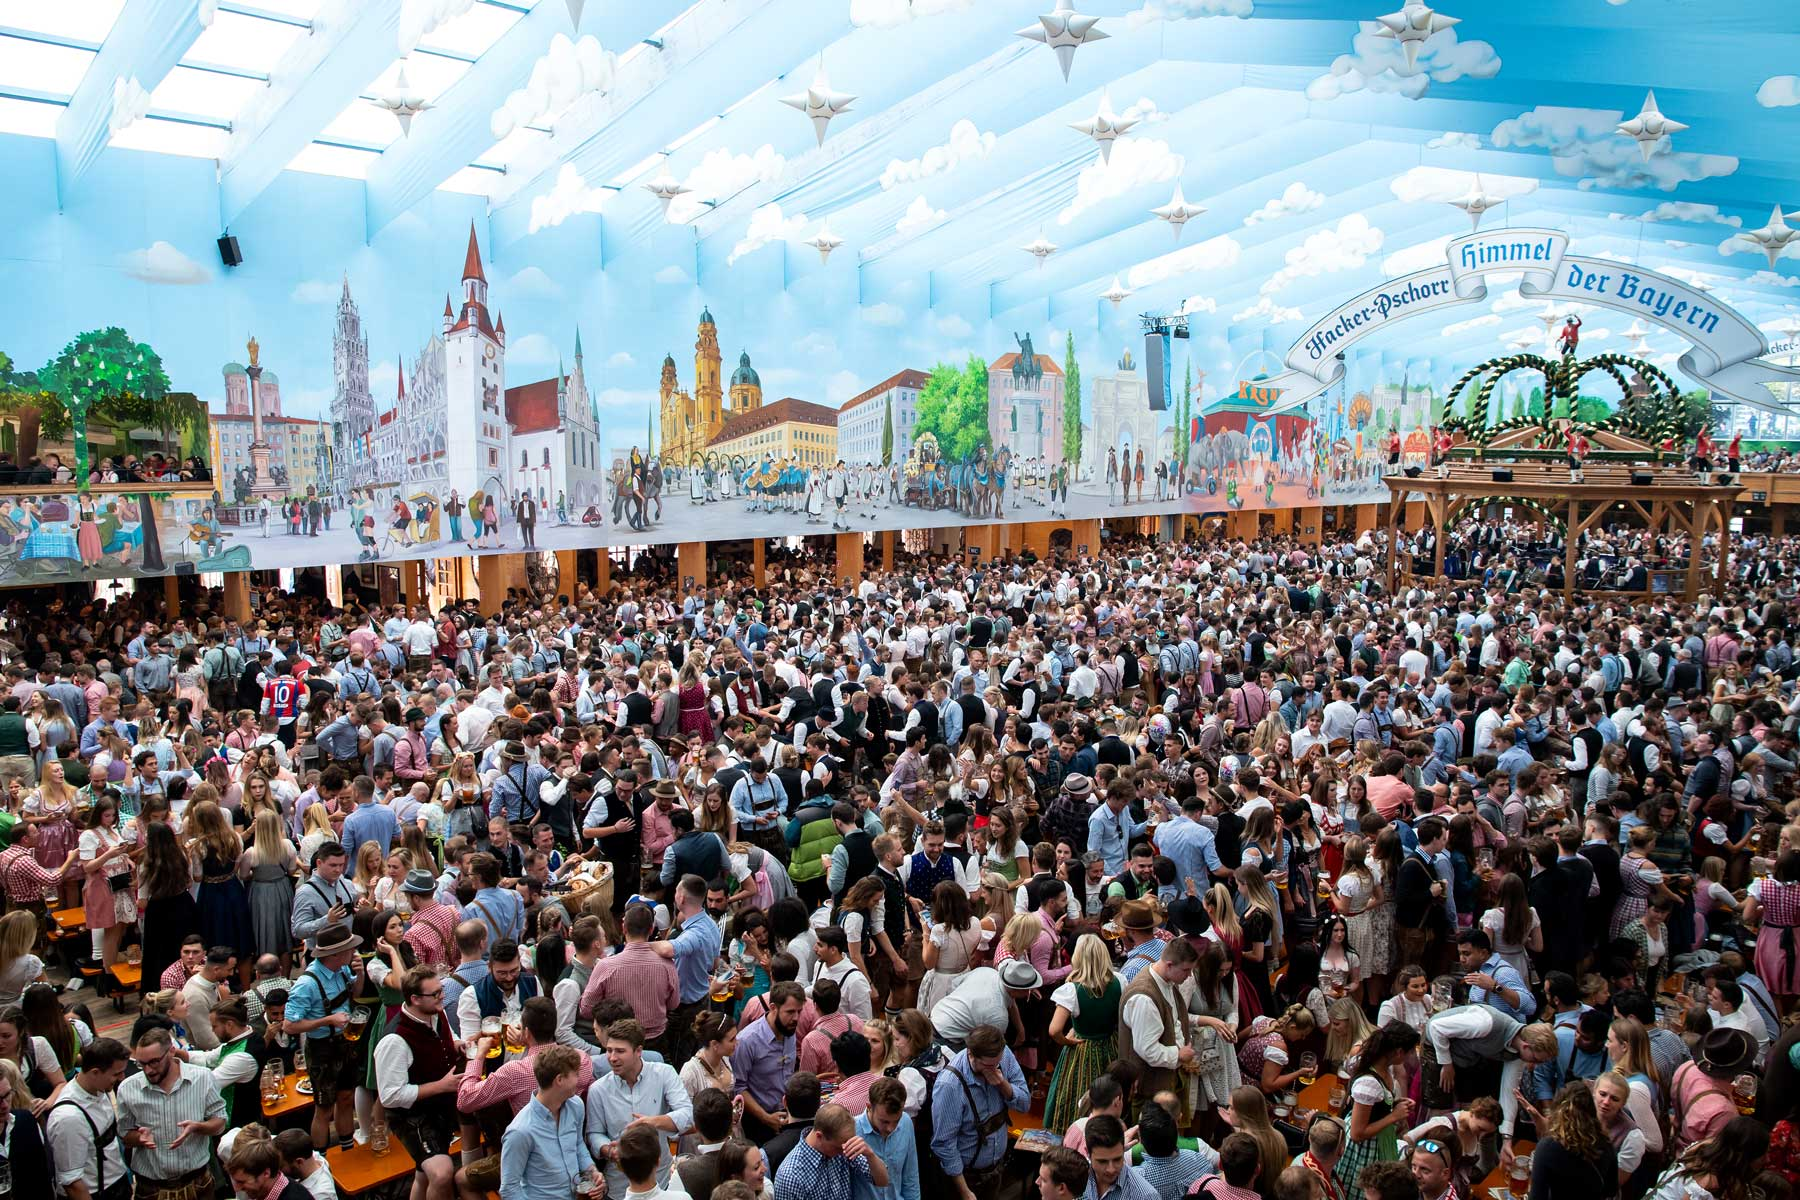 Oktoberfest attendees in one of the tents erected on the grounds where it is held in the city of Munich.